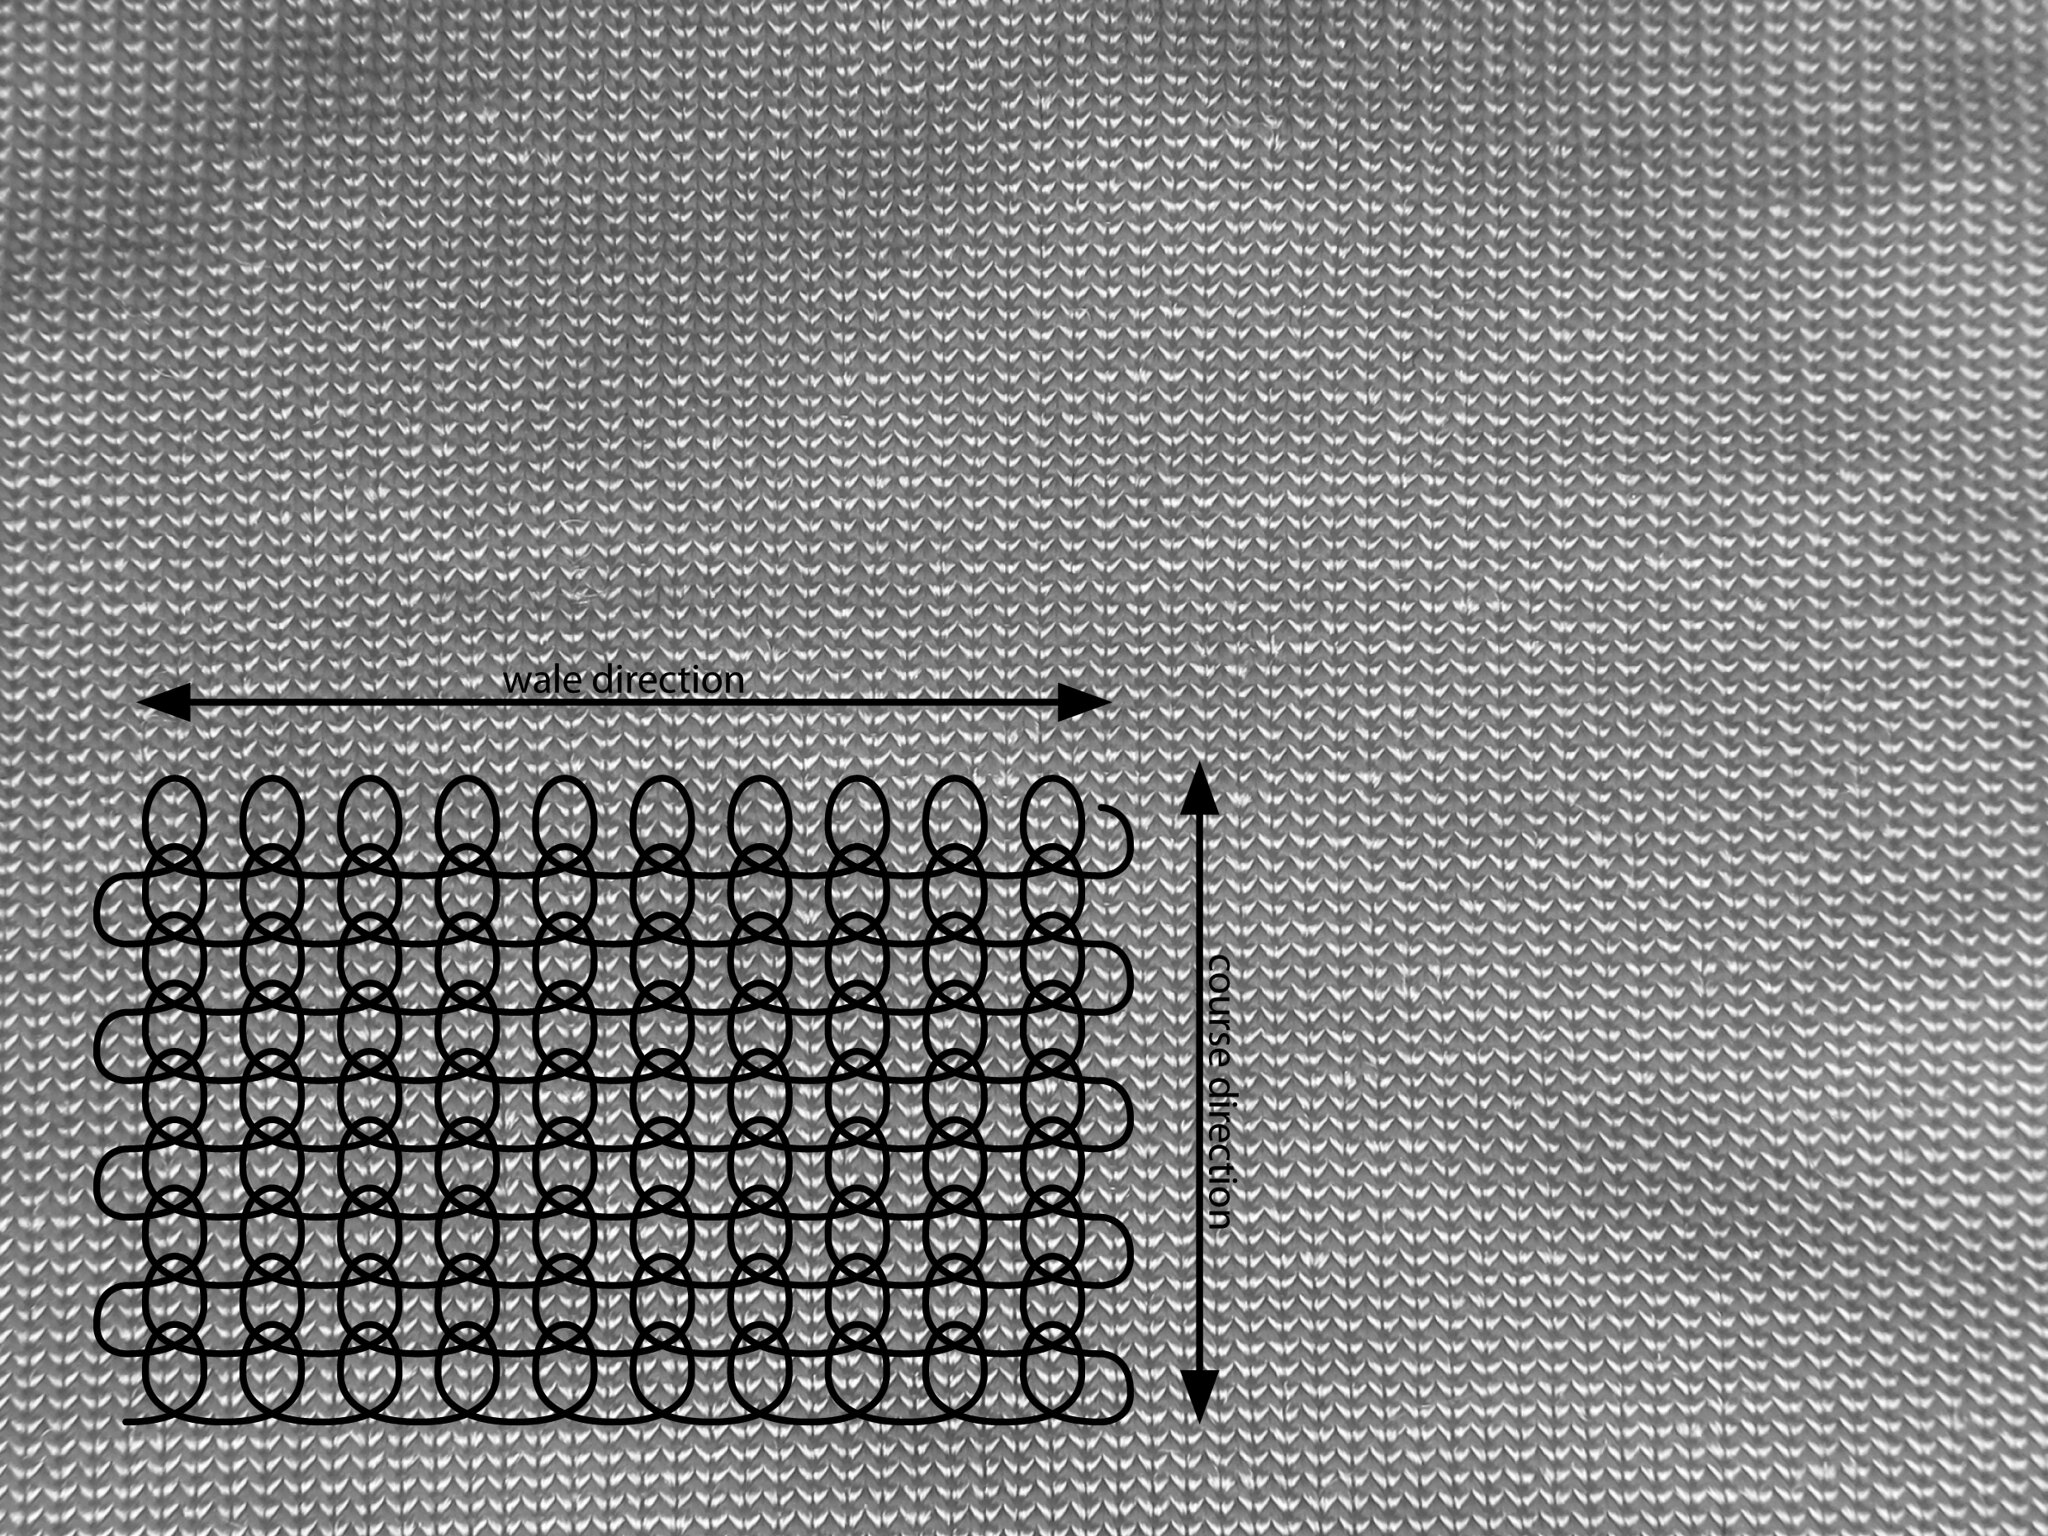 Knit fabric: course and wale directions